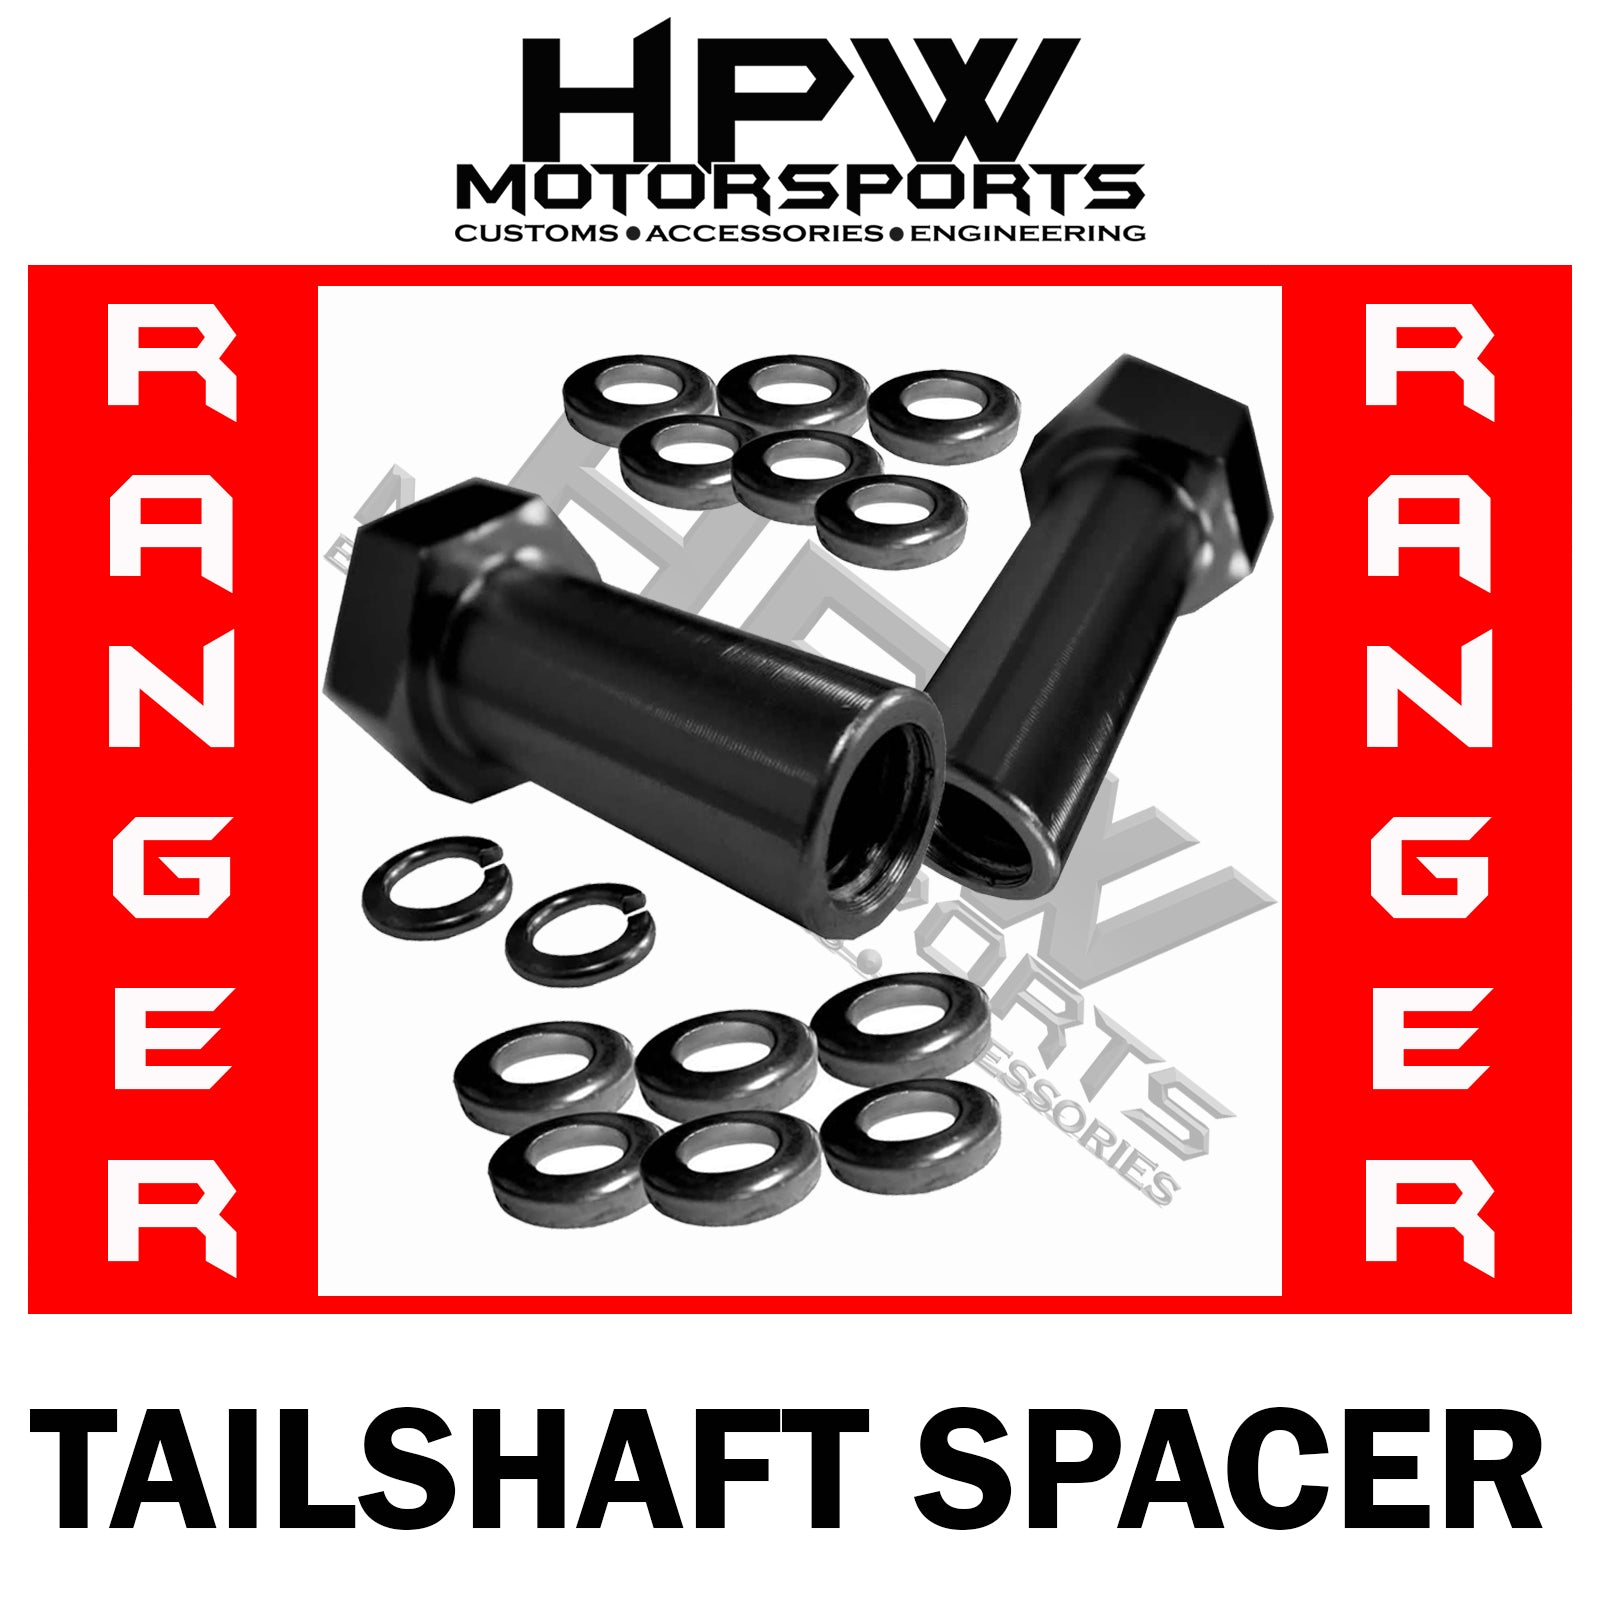 Tailshaft / Center bearing spacer KIT for Ford Ranger PX3